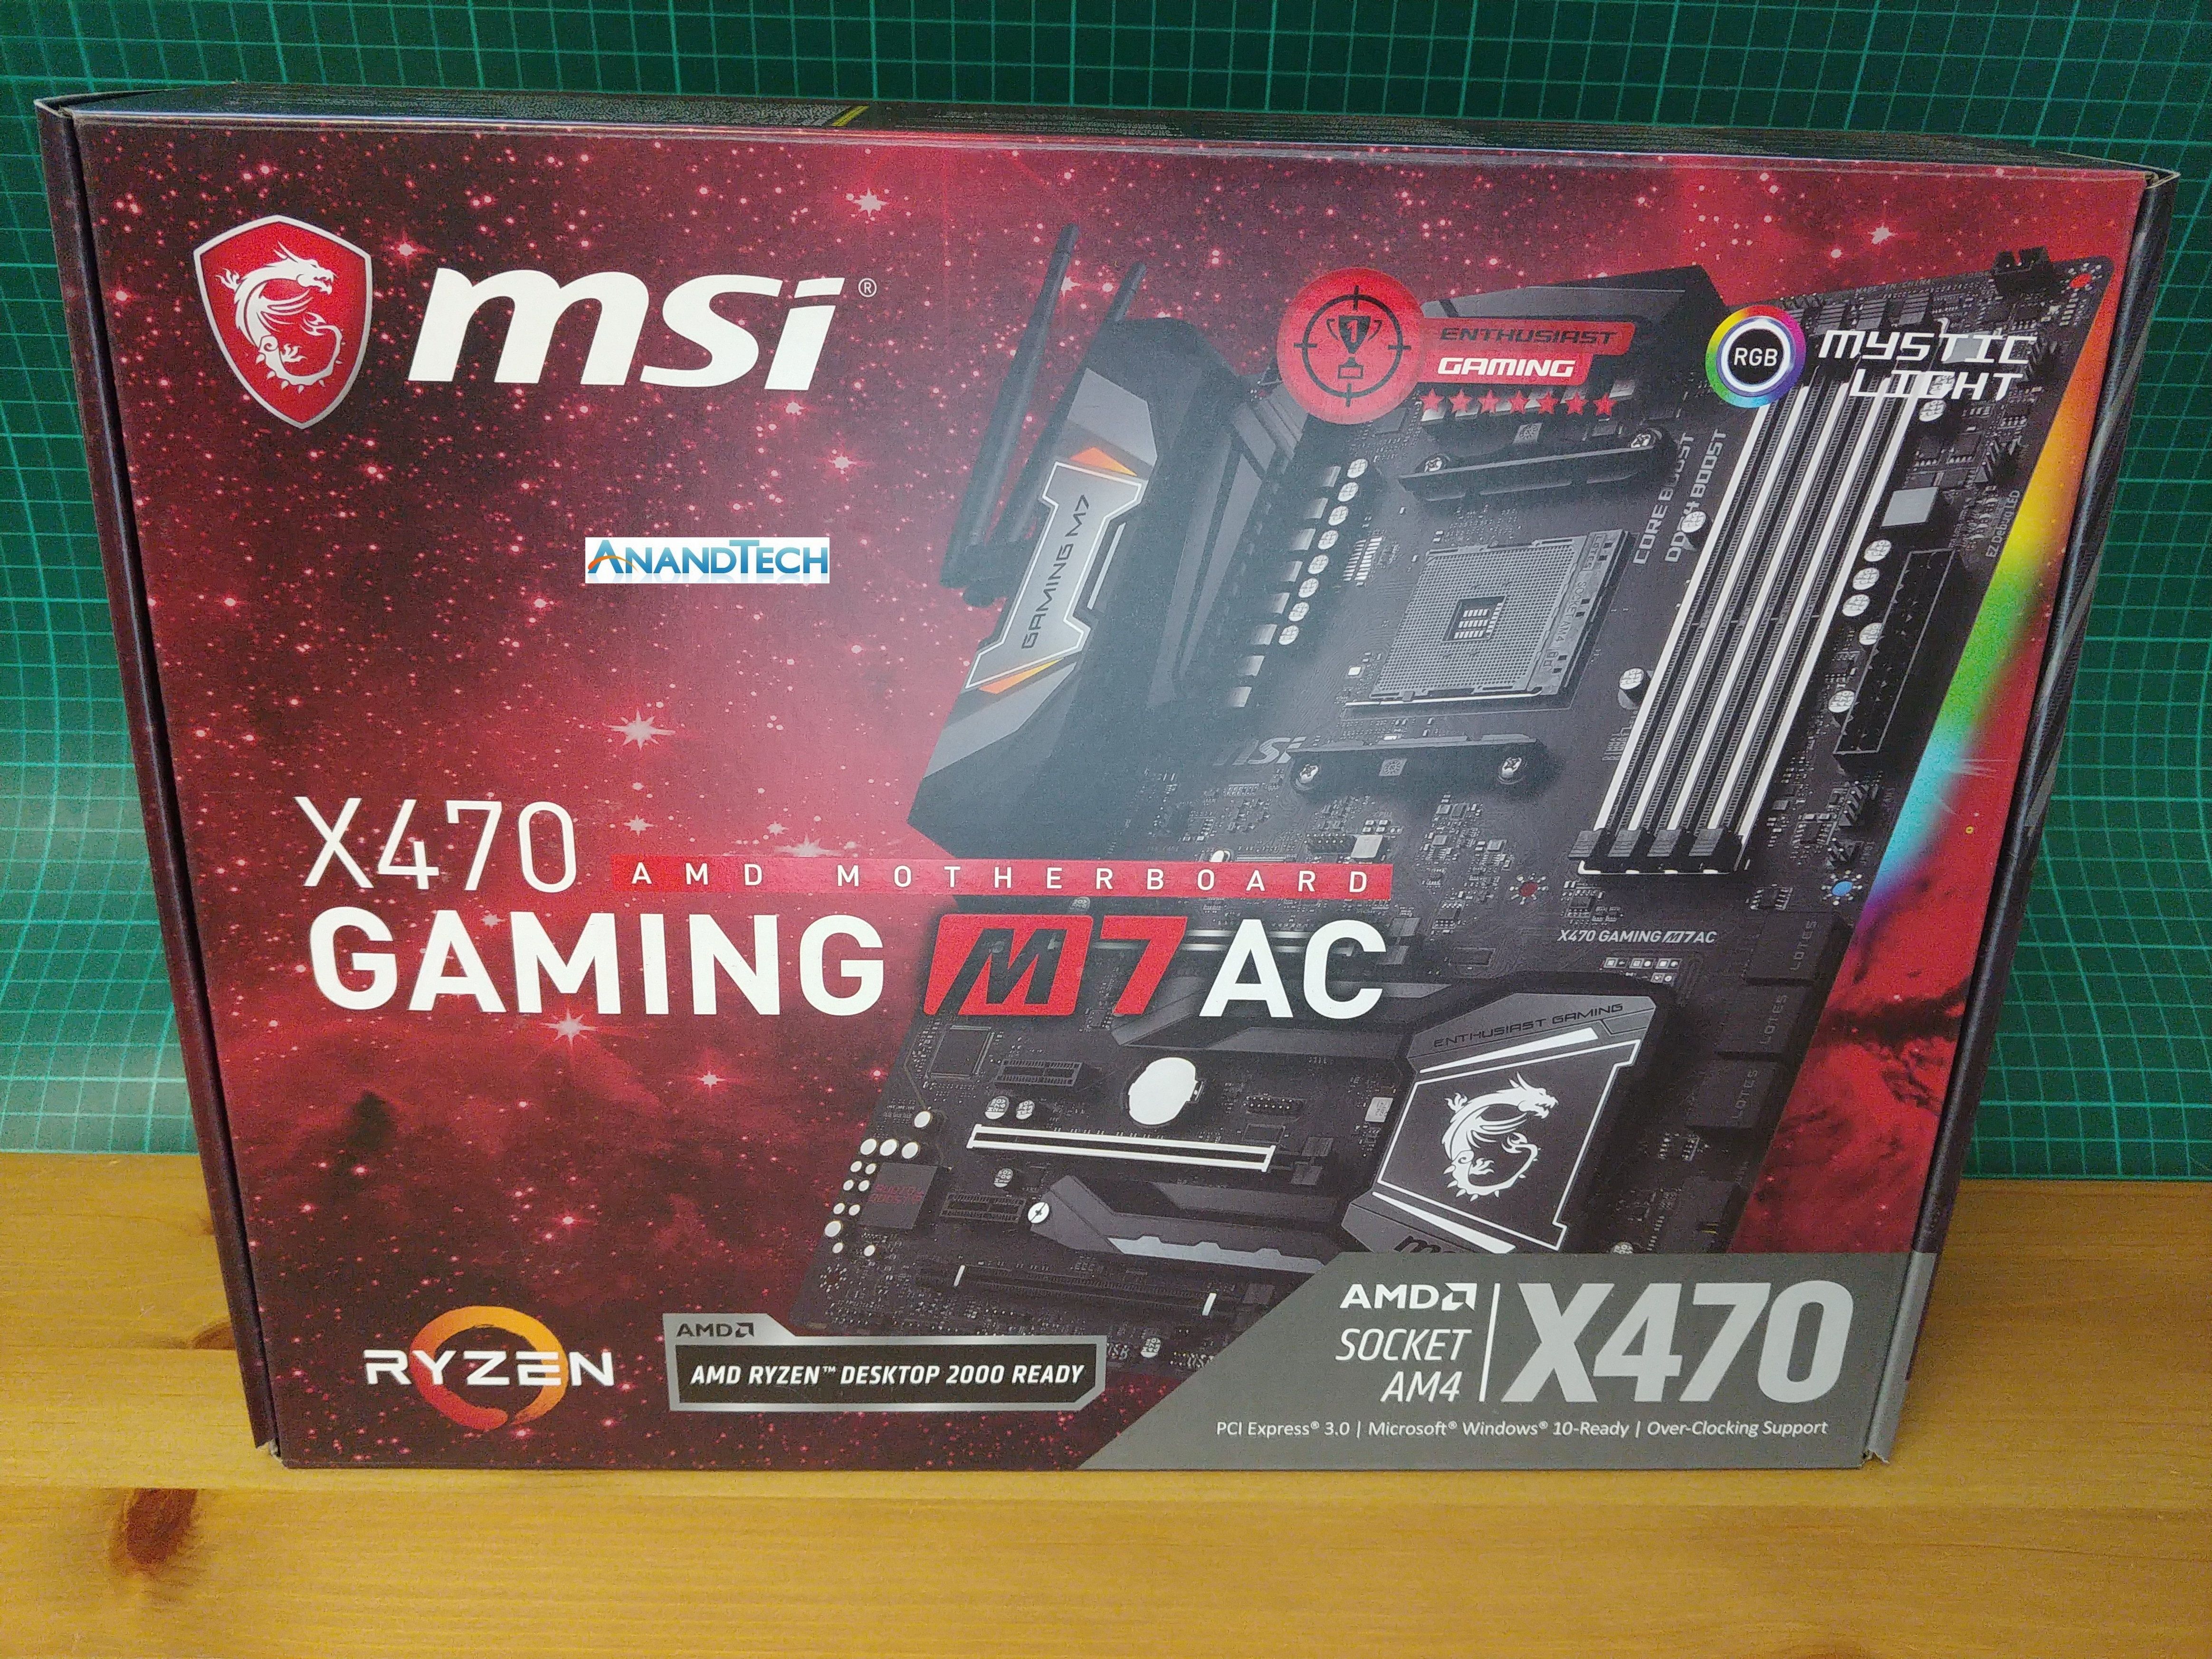 New X470 Chipset and Motherboards: A Focus on Power - The